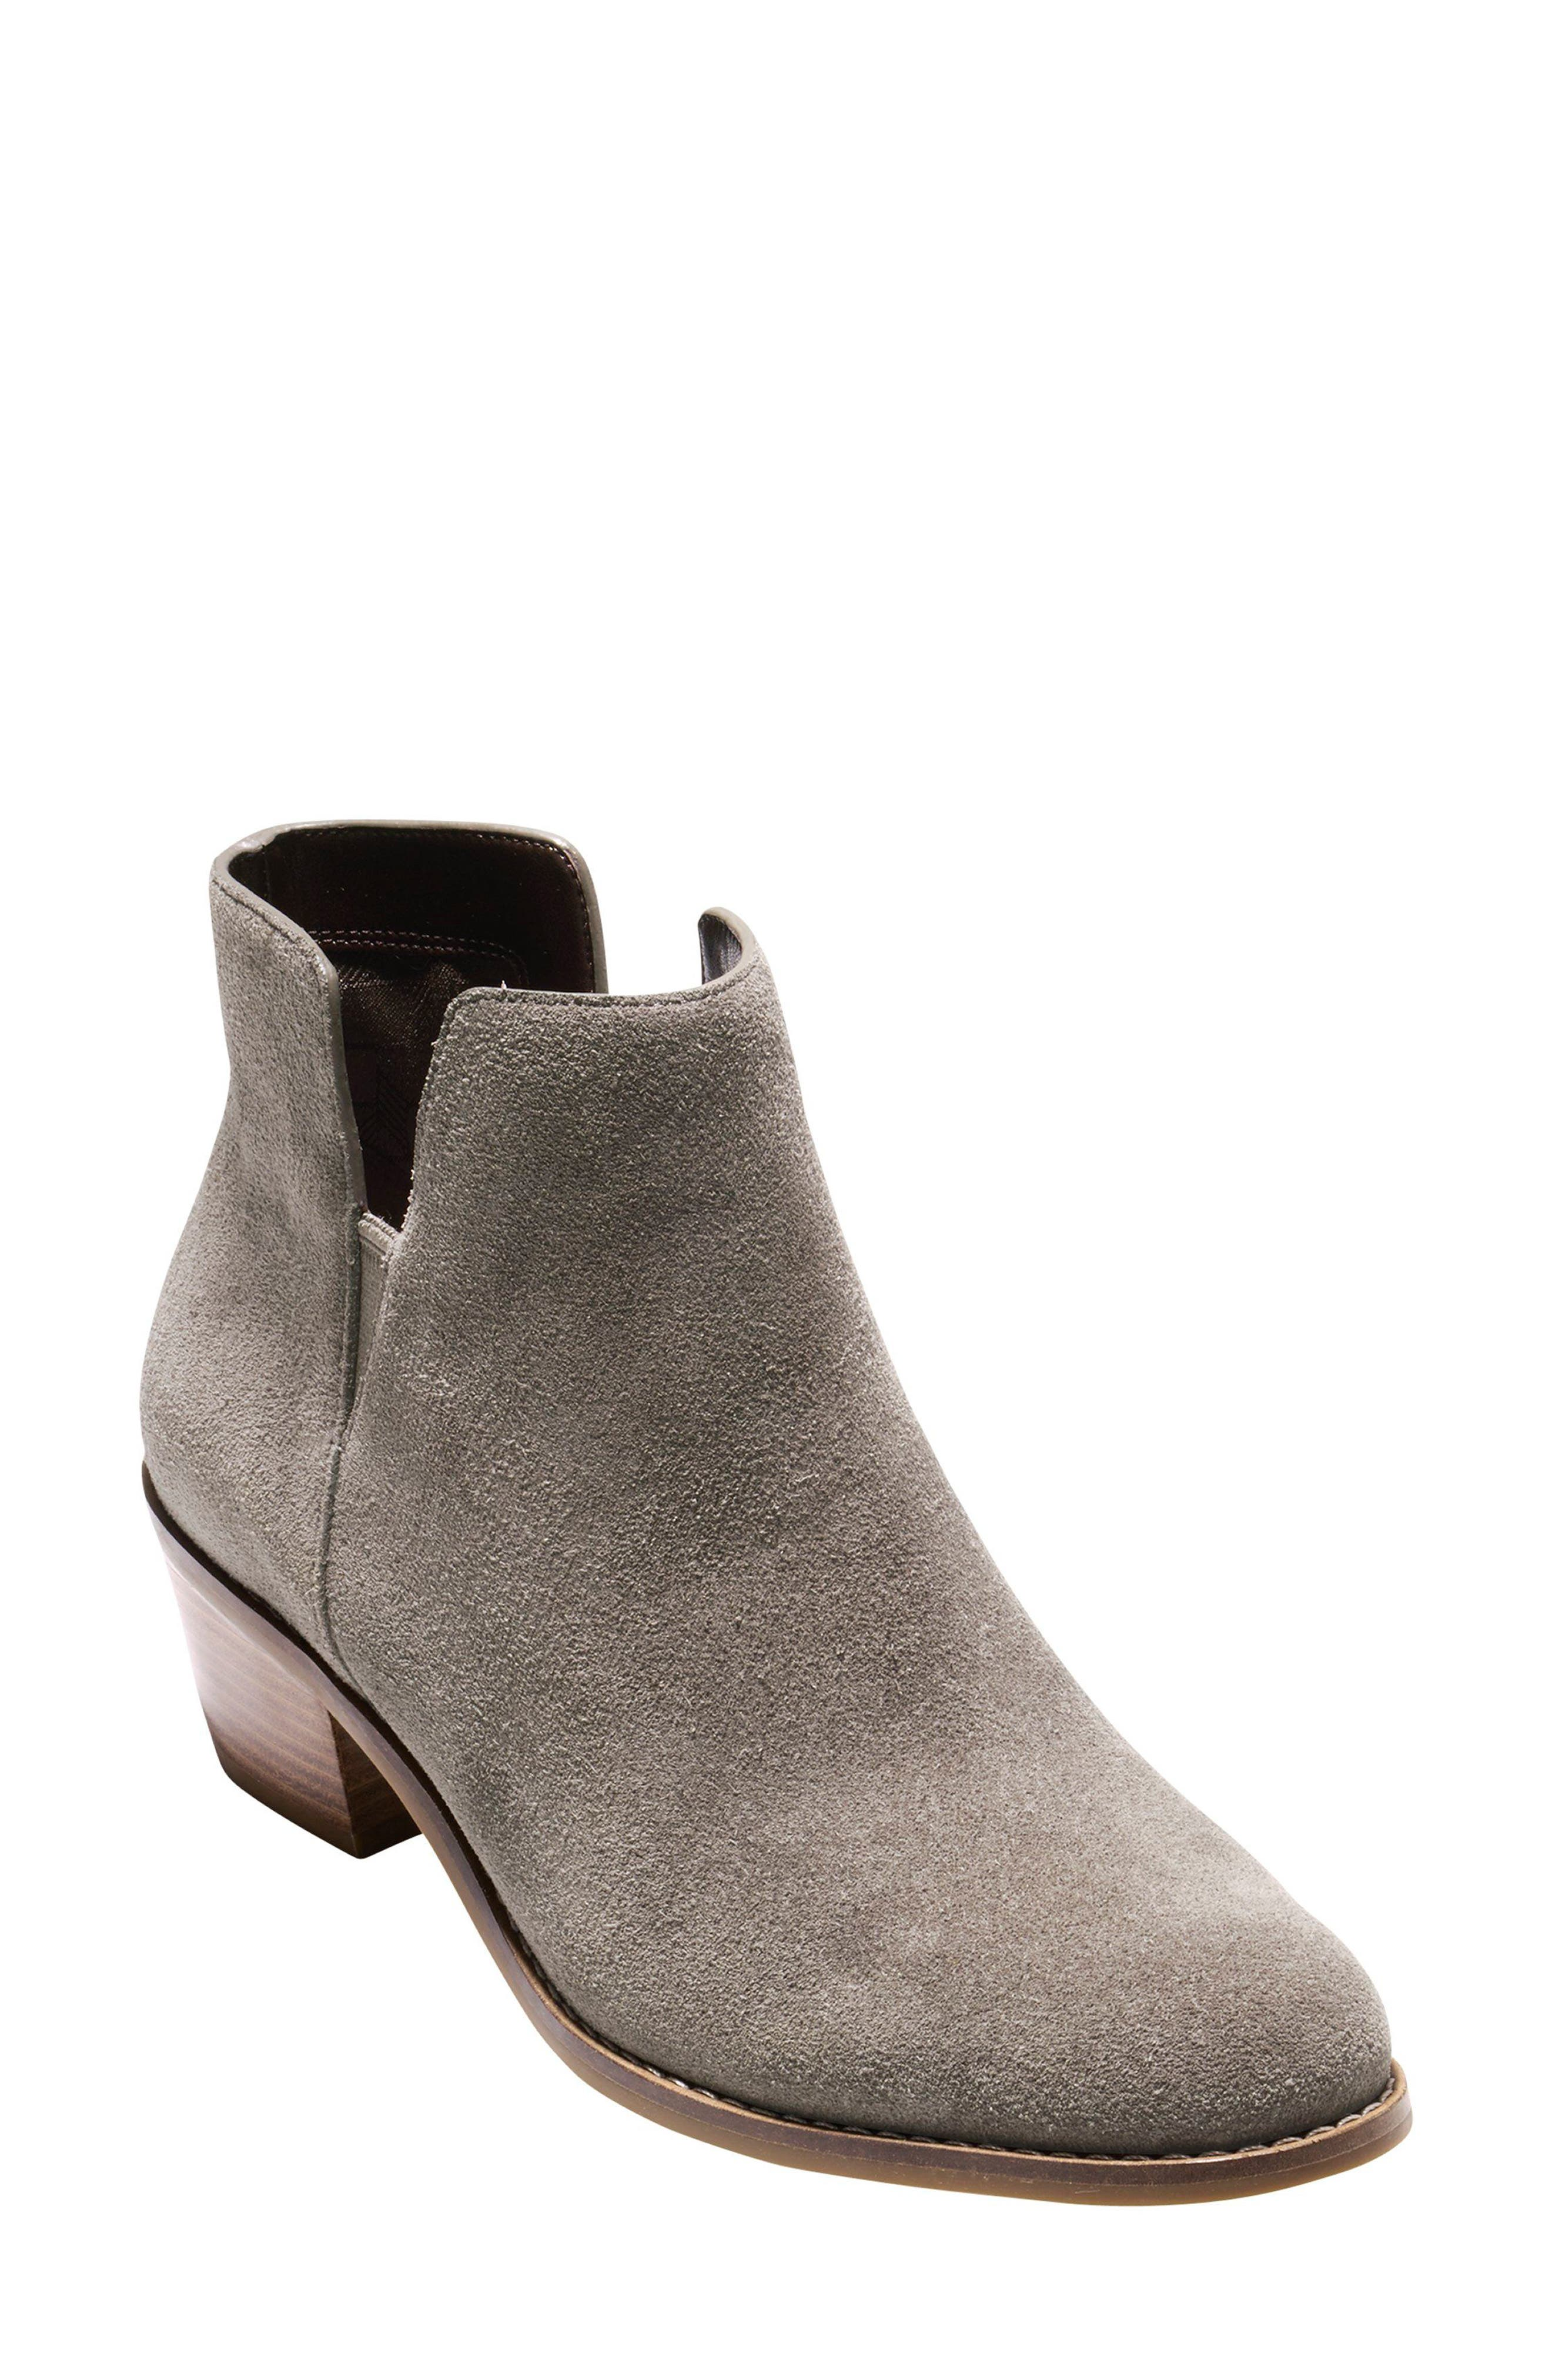 'Abbot' Chelsea Boot,                         Main,                         color,